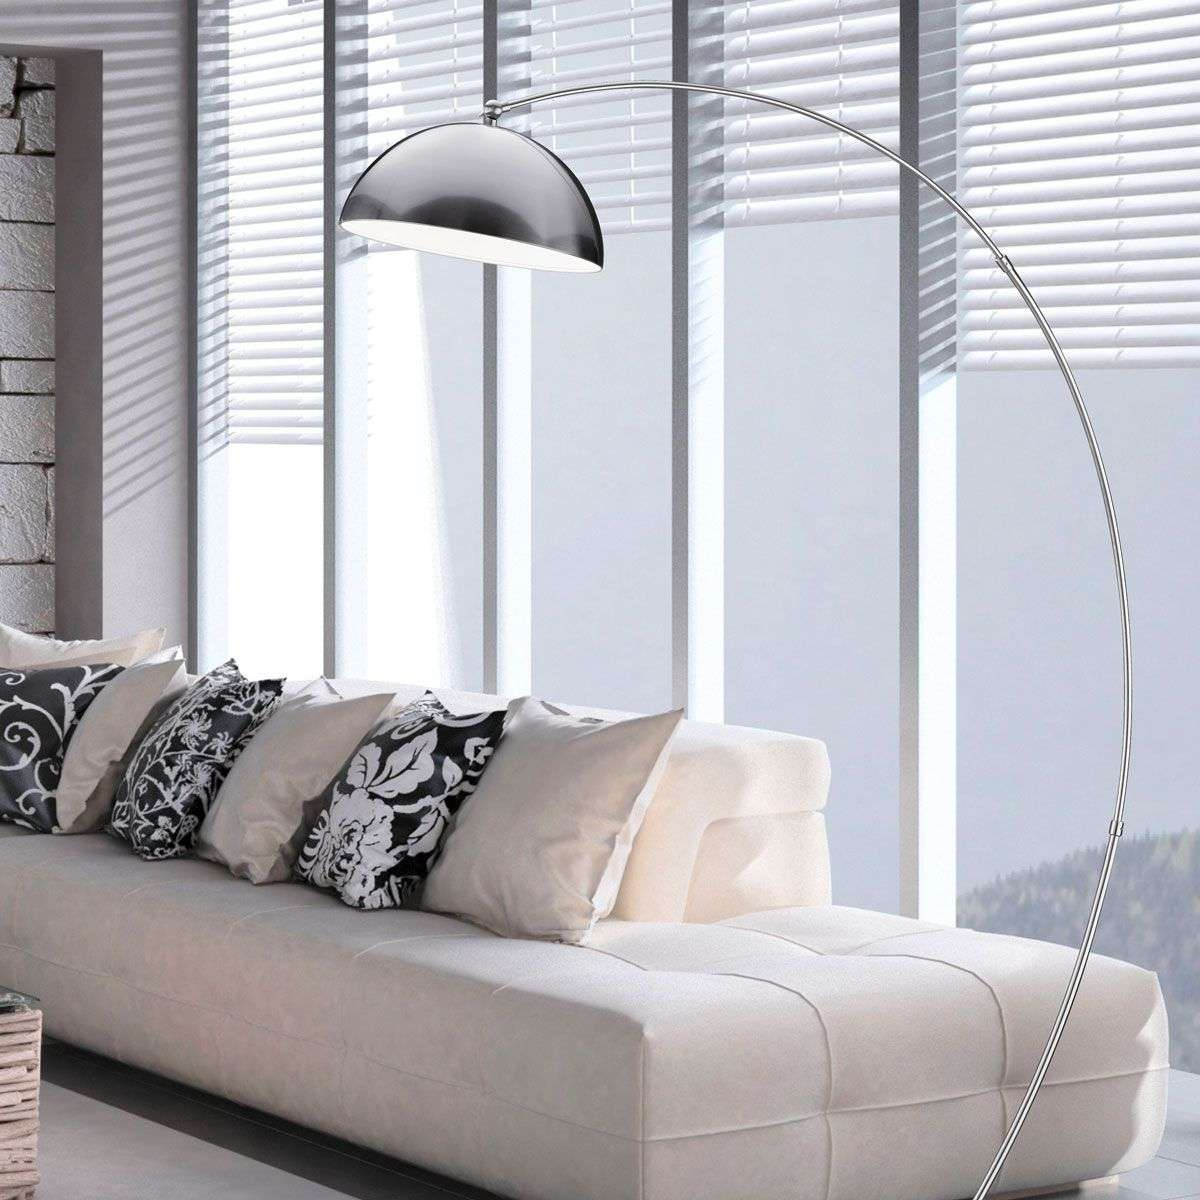 lampadaire led arqu florestan avec variateur. Black Bedroom Furniture Sets. Home Design Ideas